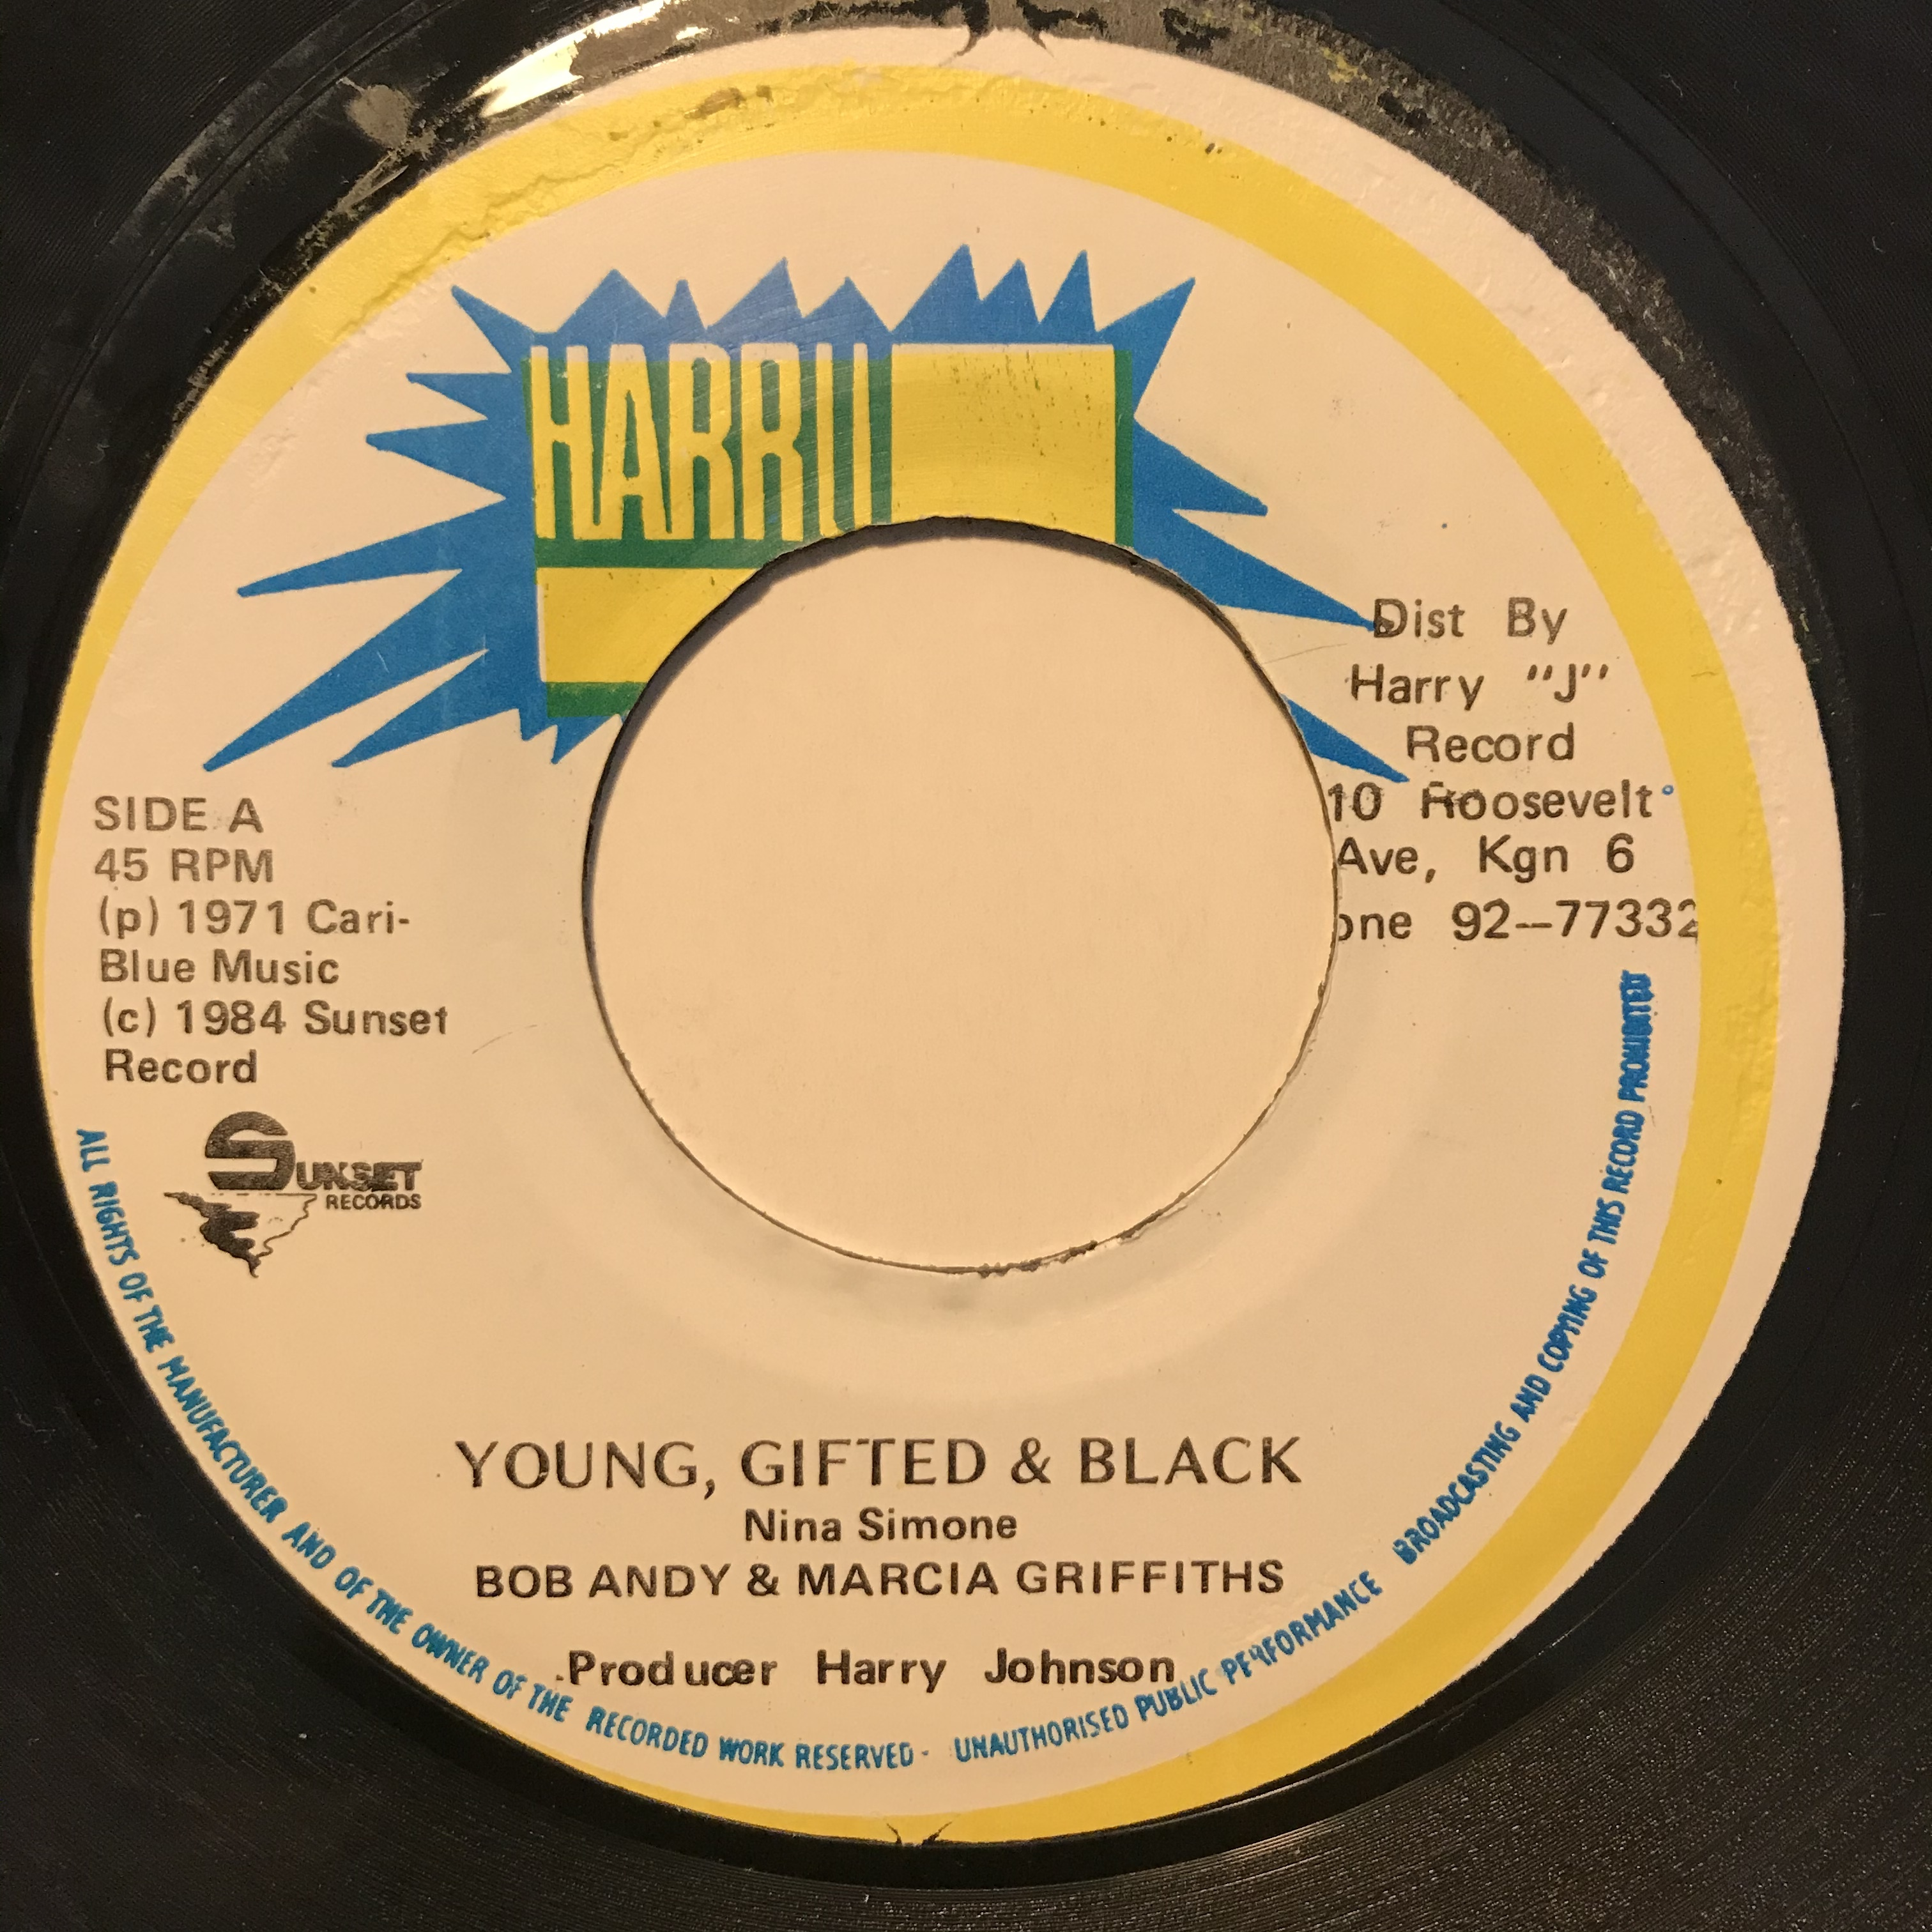 Bob Andy & Marcia Griffiths - Young Gifted & Black【7-10823】